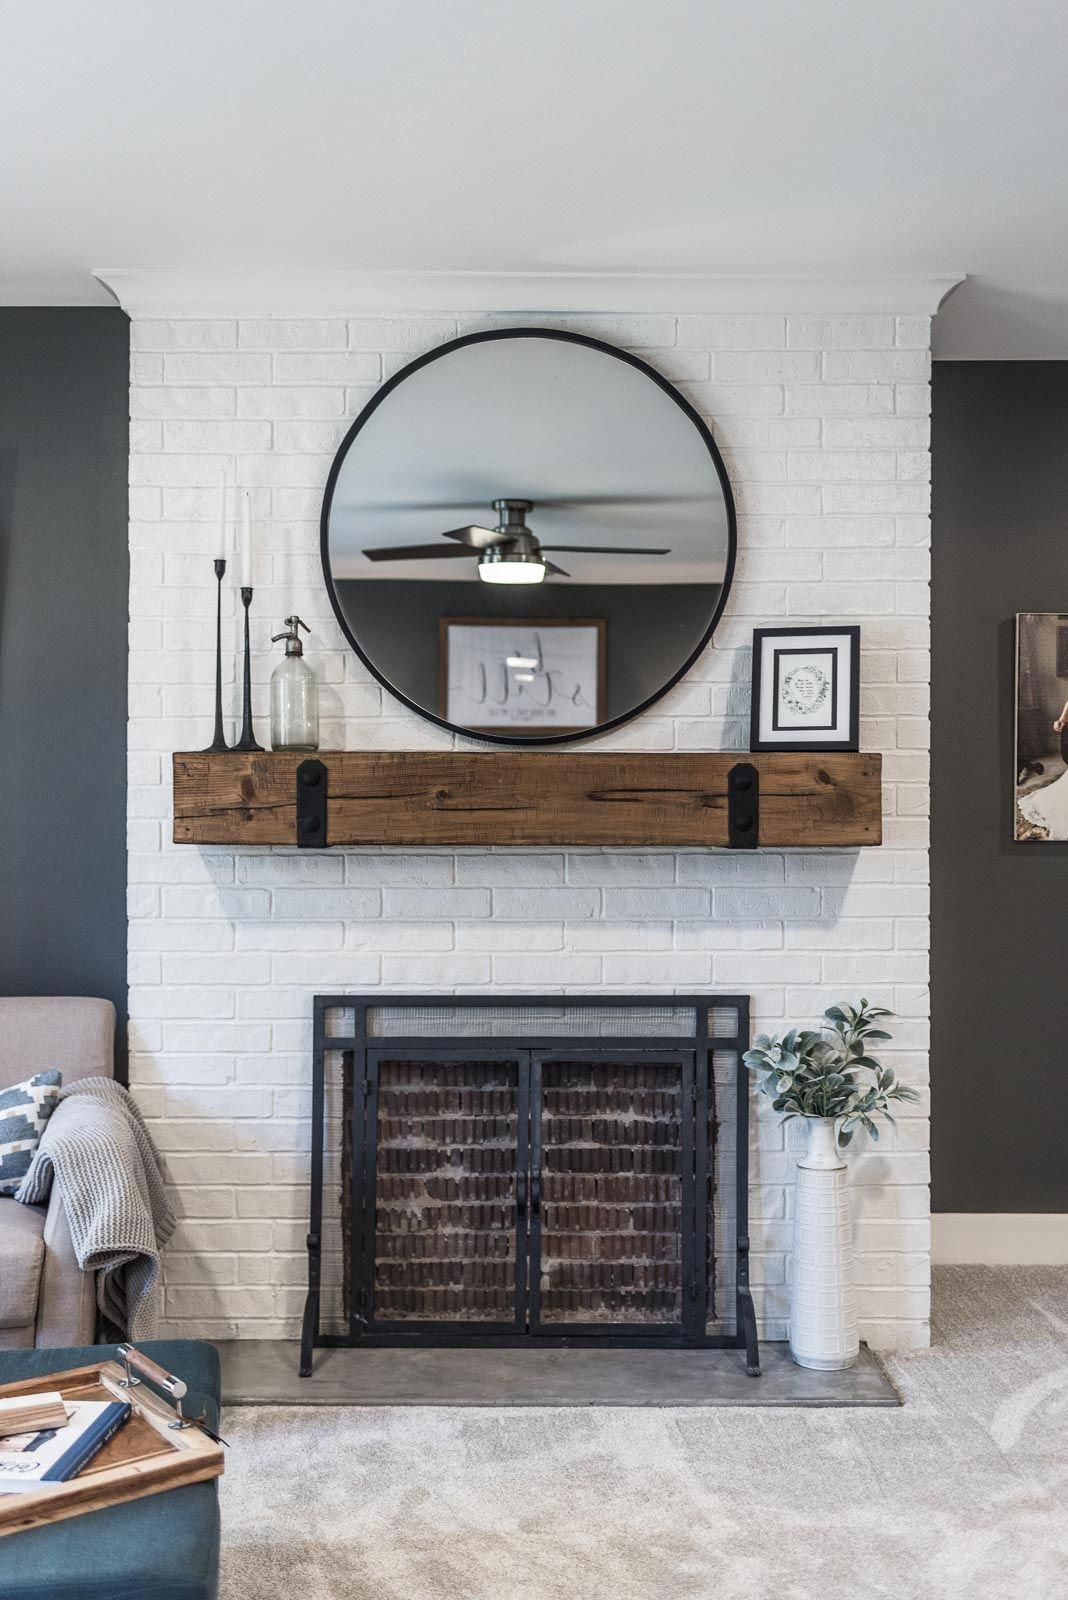 Master Bedroom And Bathroom Addition In A Modern Farmhouse Home Sherwin Williams Grizzle Gra White Brick Fireplace Brick Wall Bedroom Brick Fireplace Makeover